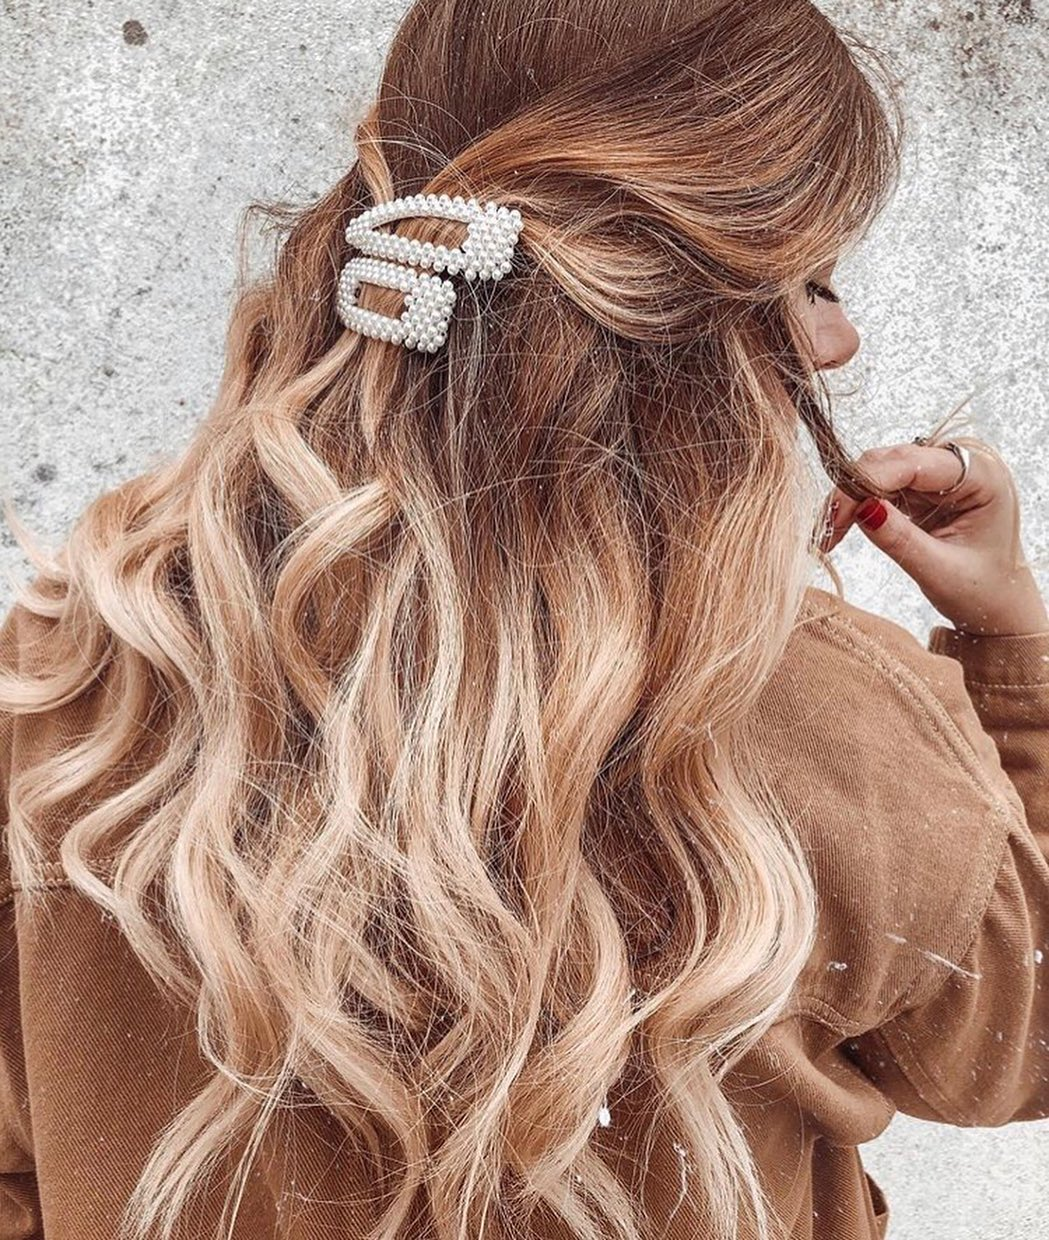 Hair Clip Trend 2019: How To Rock Pearl Hair Clip Trend